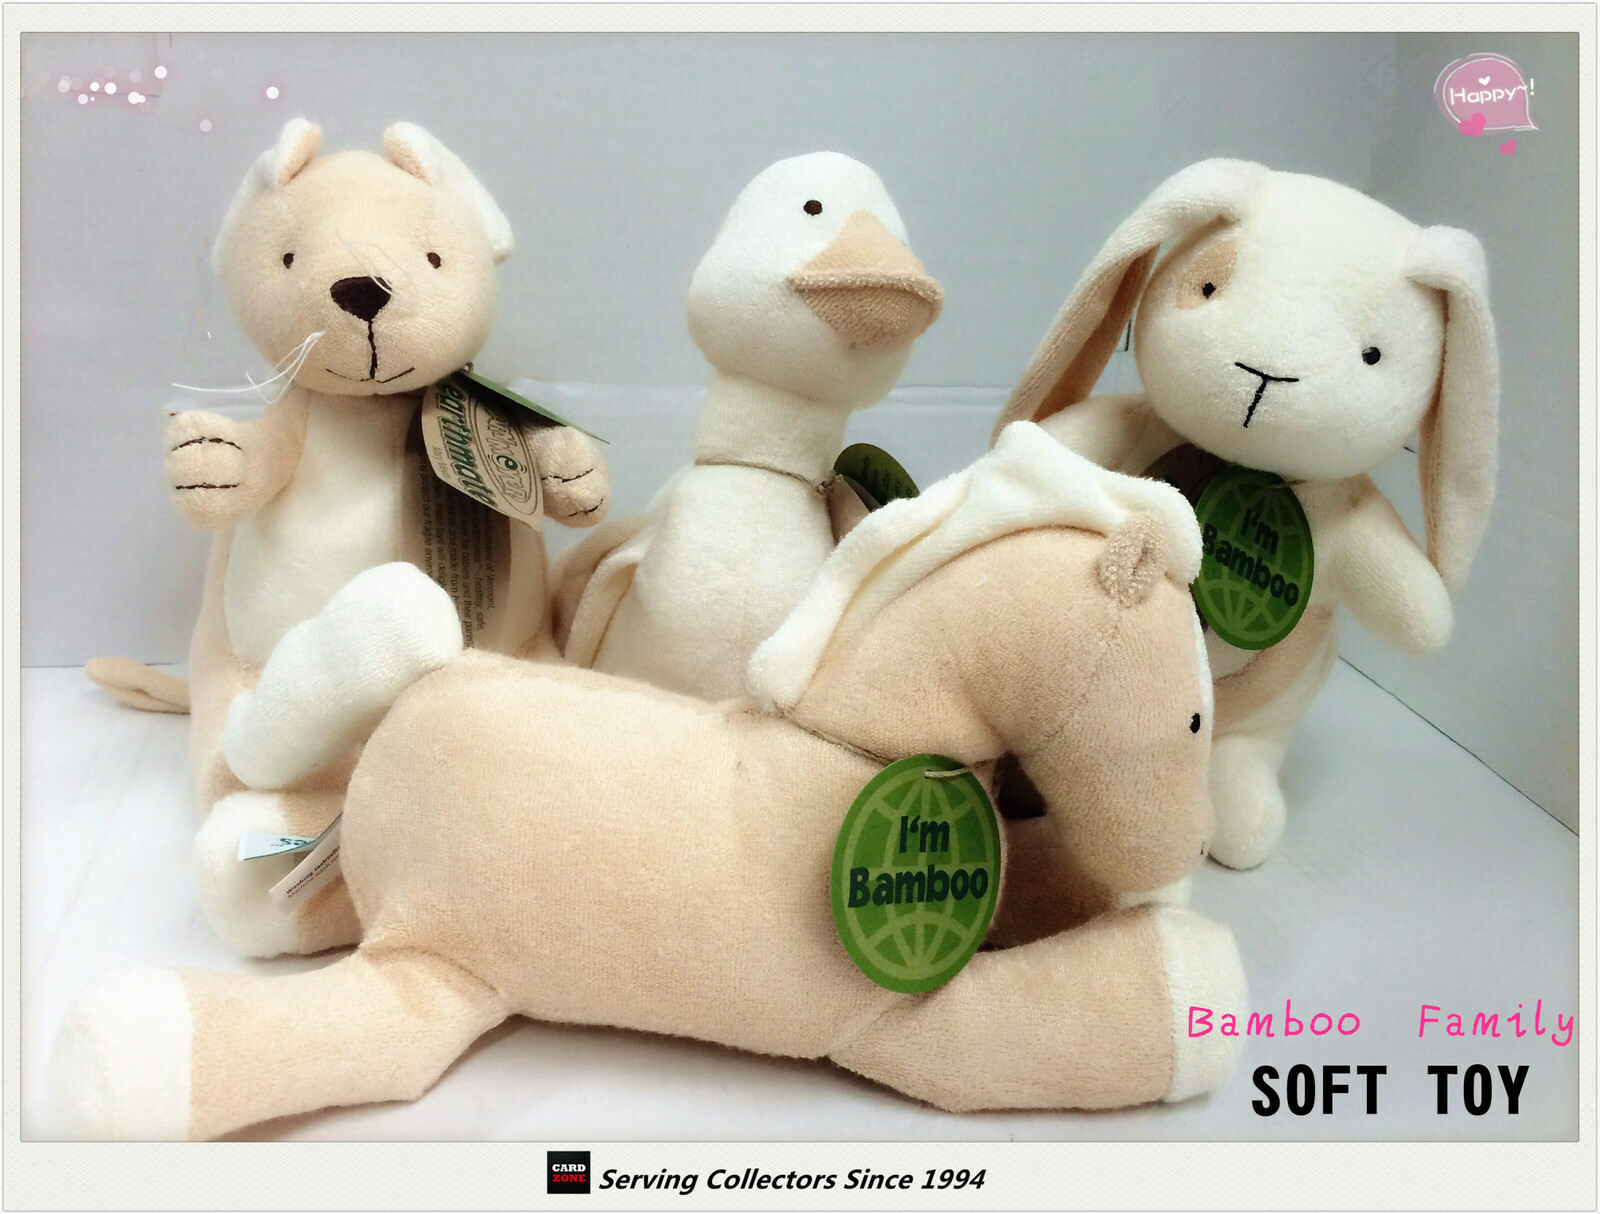 6 SETS OF Bamboo Plush Soft Toys 8 -9  FAMILY of 4--Top quality  (24 in total)